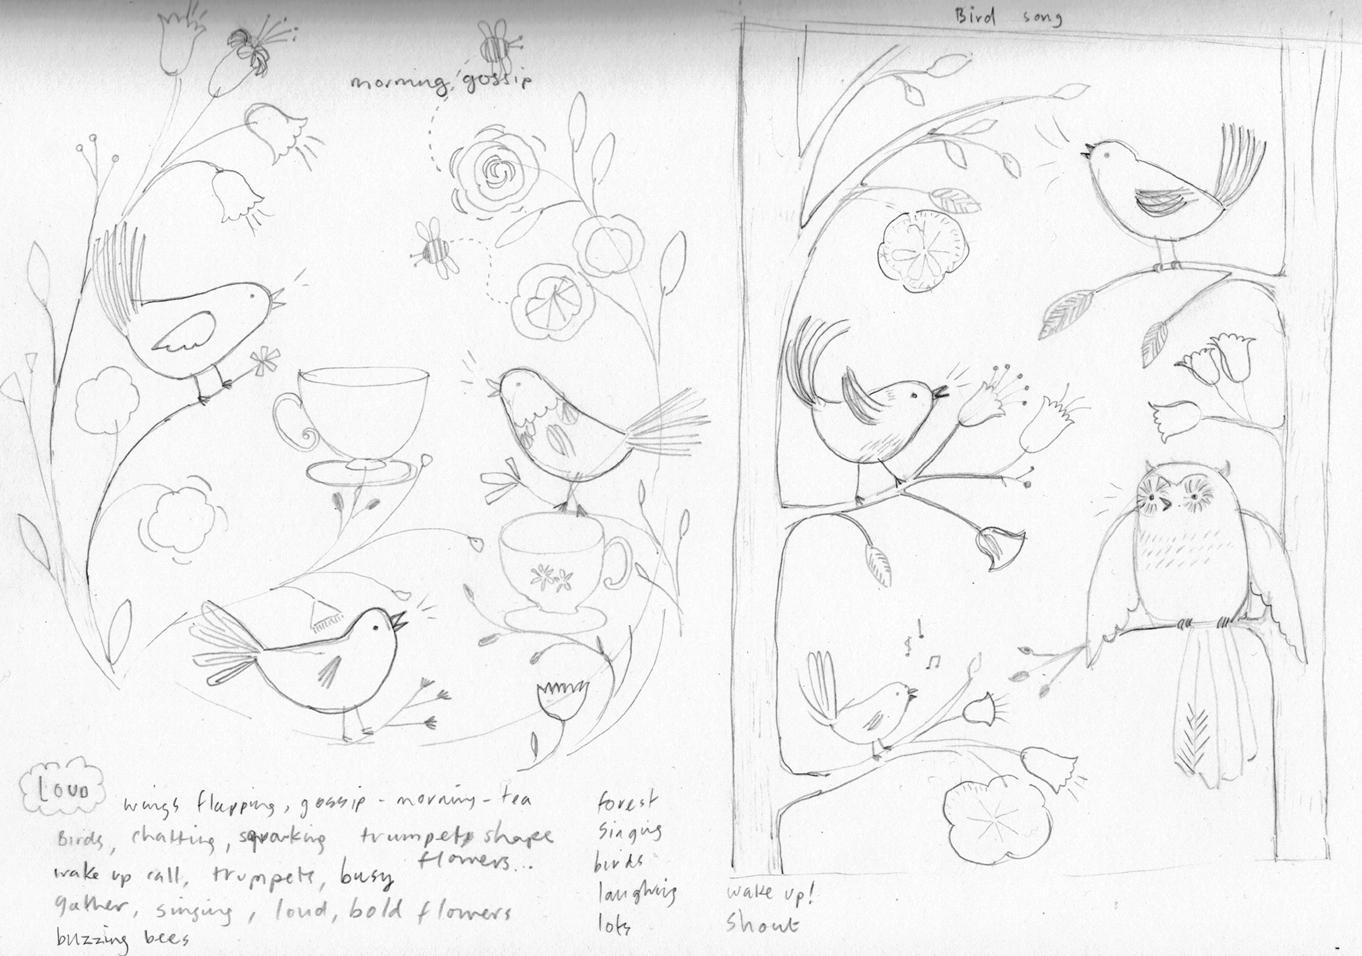 bird song - final - image 6 - student project